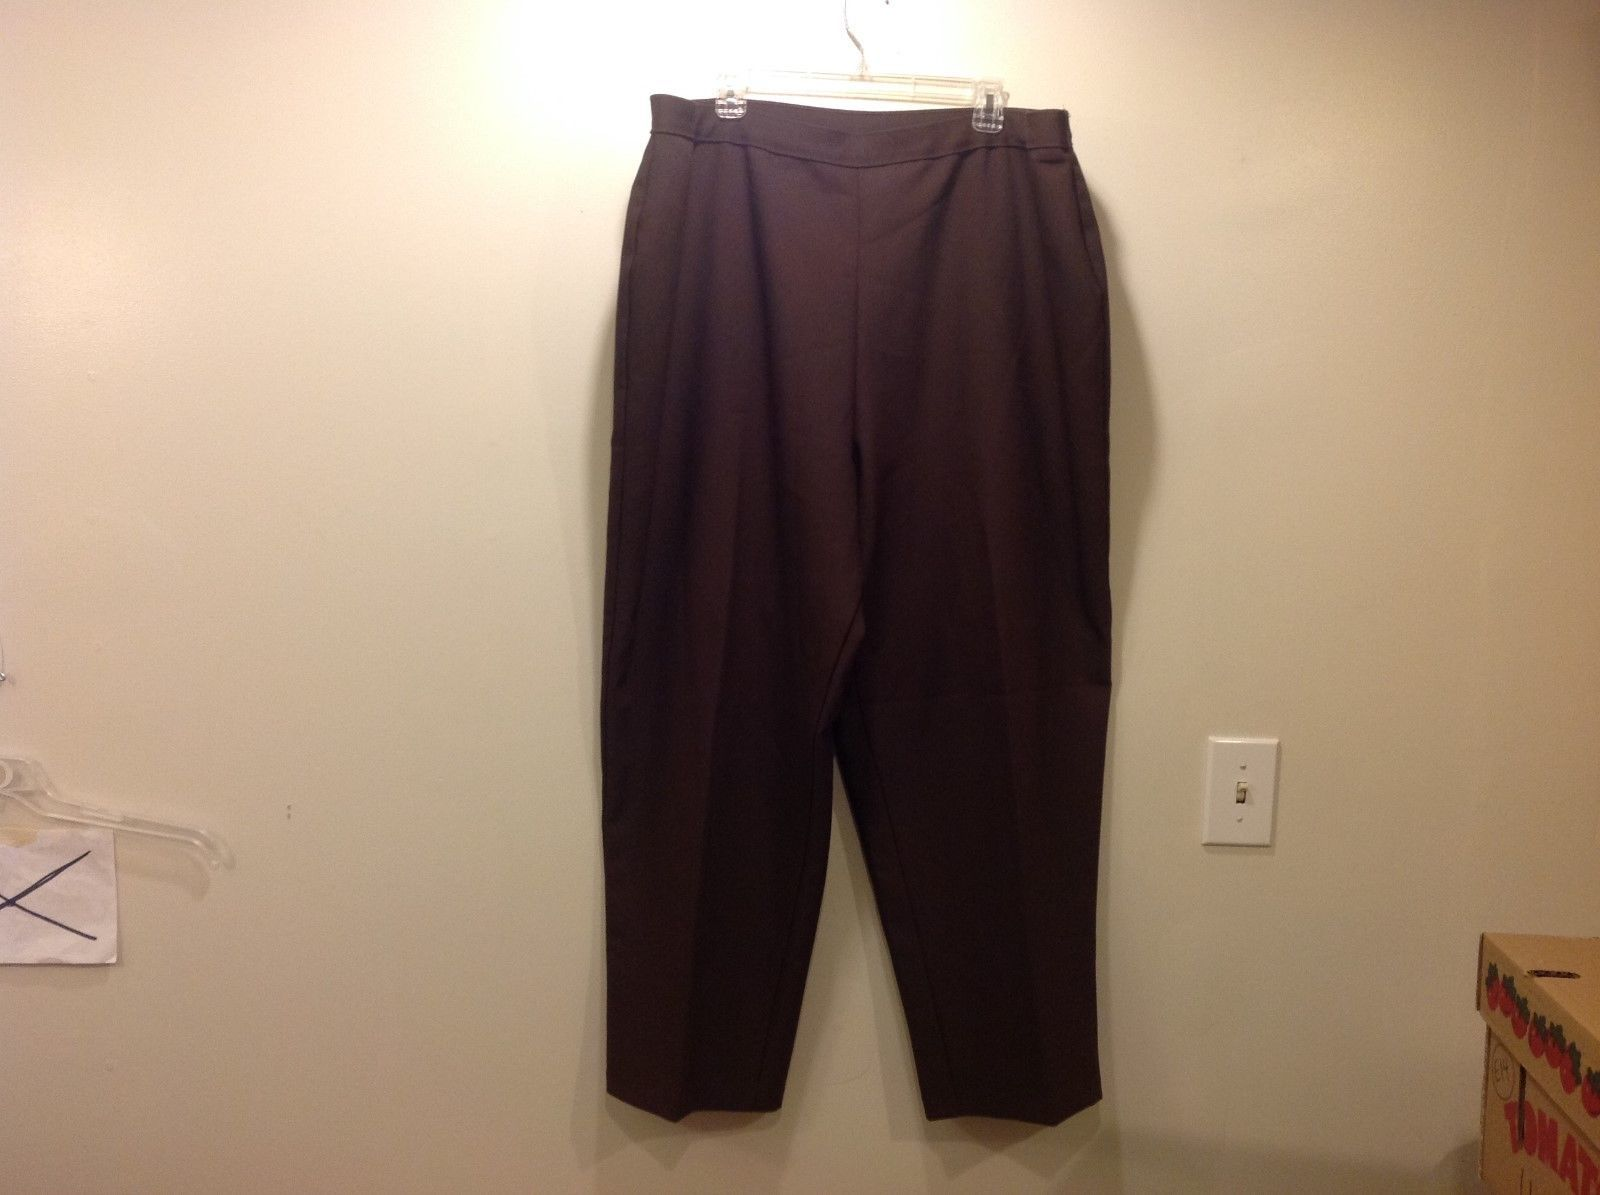 Bend Over Brown Dress Pants sz 48